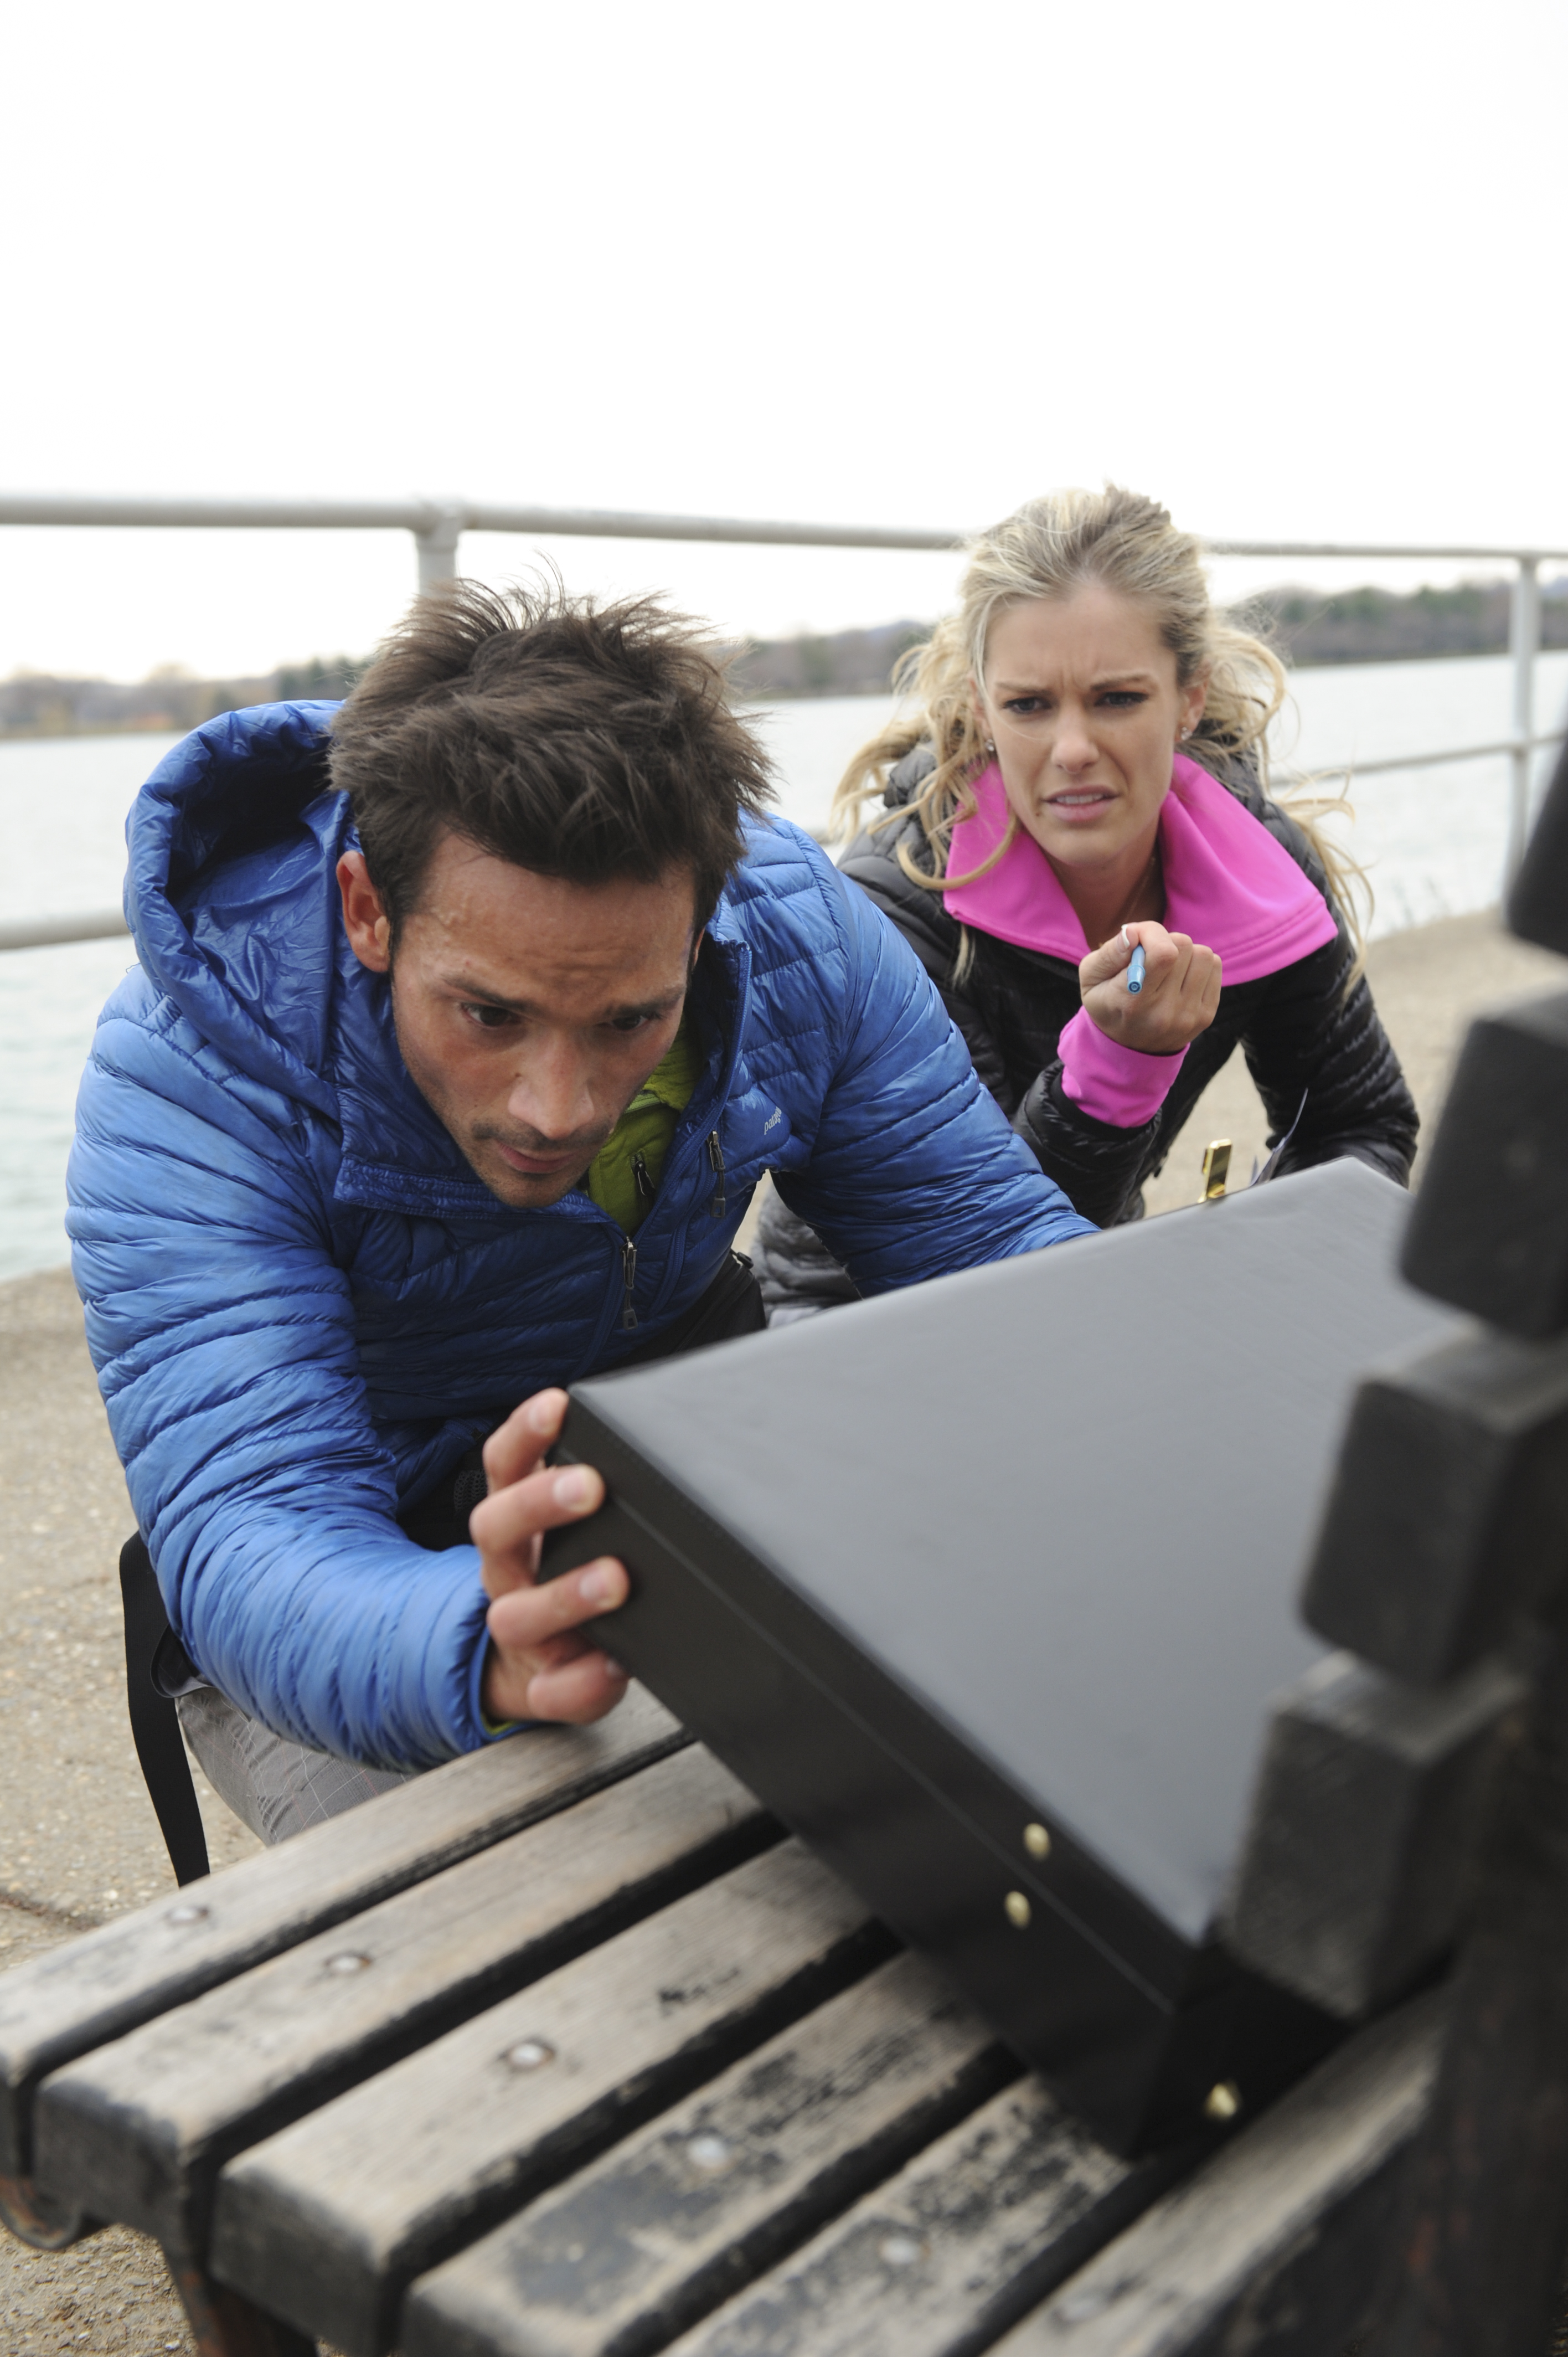 Max and Katie in the season finale of The Amazing Race